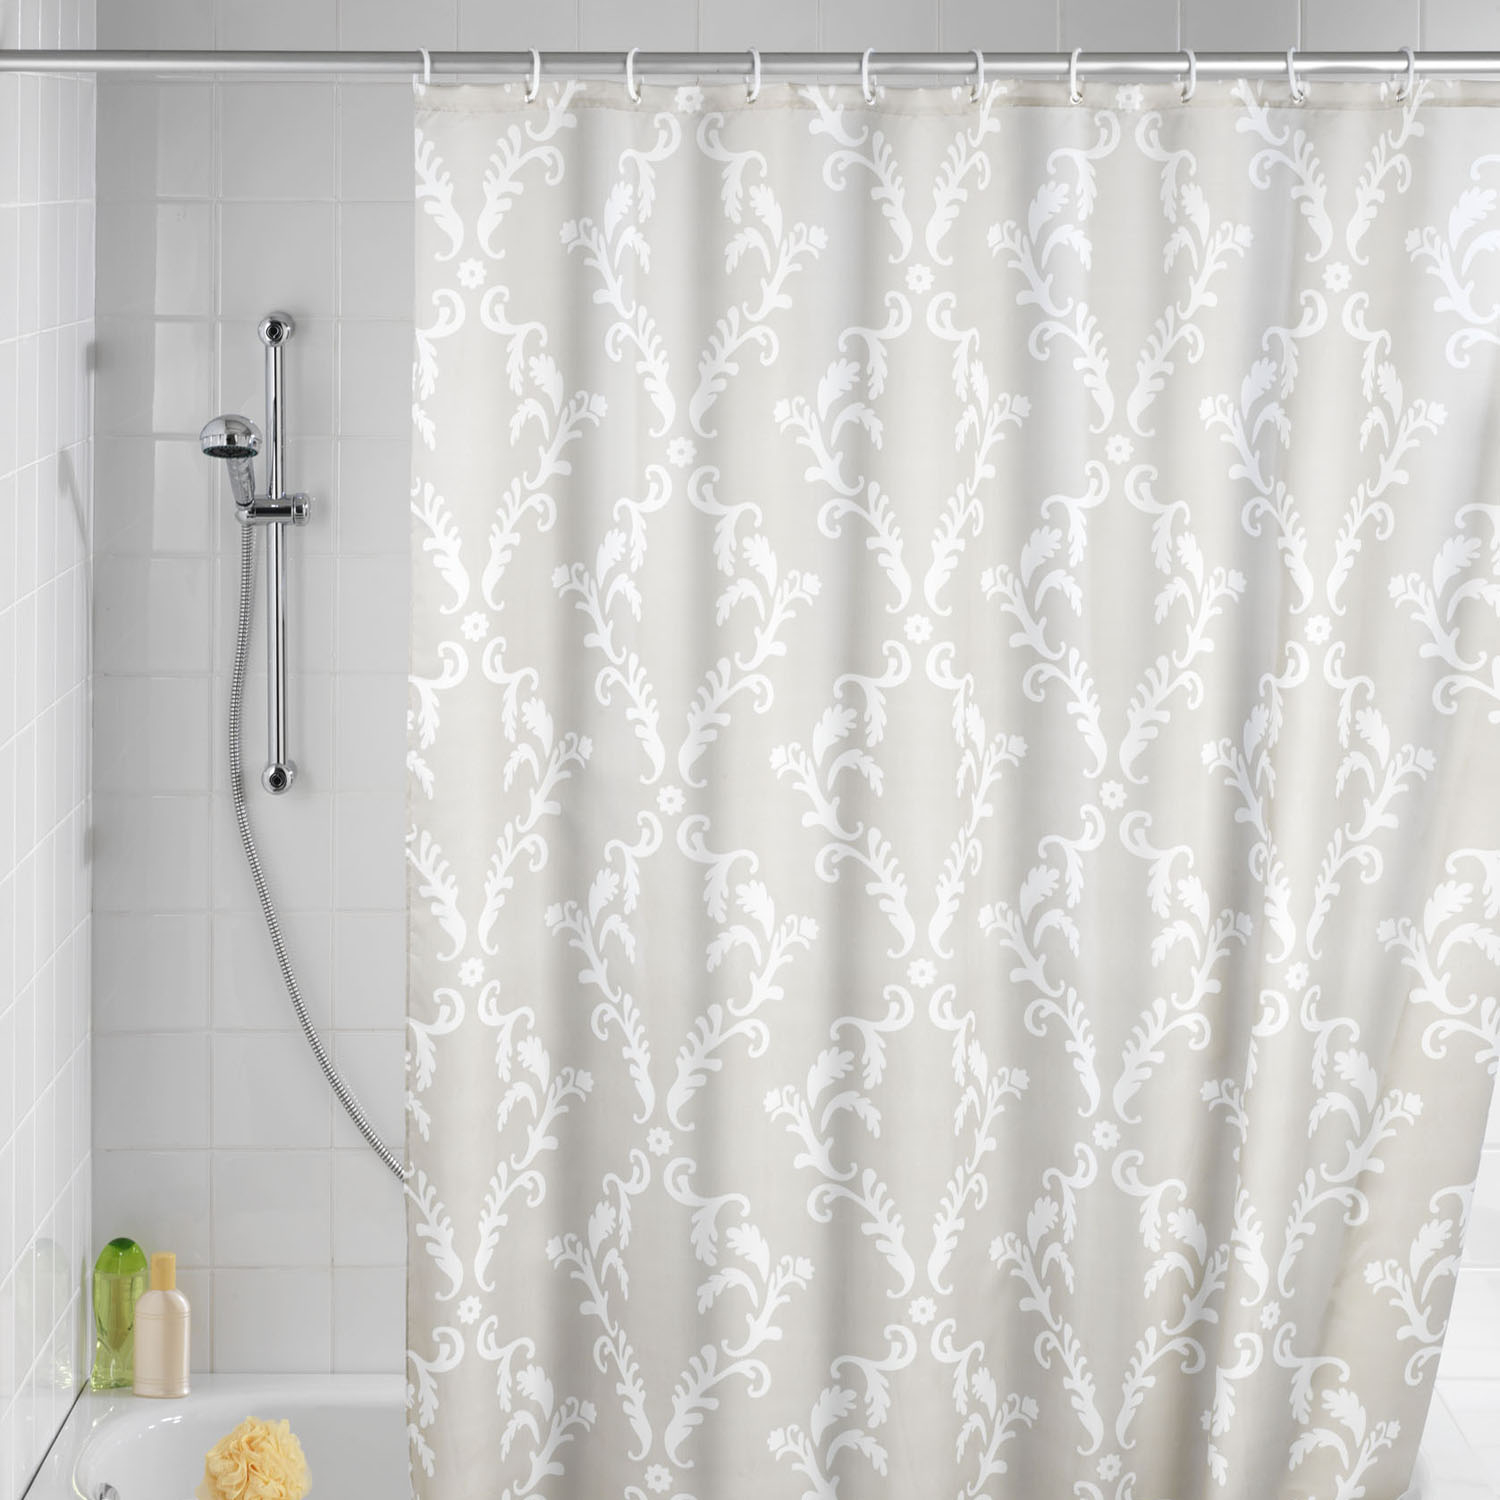 Curtains Solid Red Shower Curtain Coral Beach Shower Curtain regarding sizing 1500 X 1500